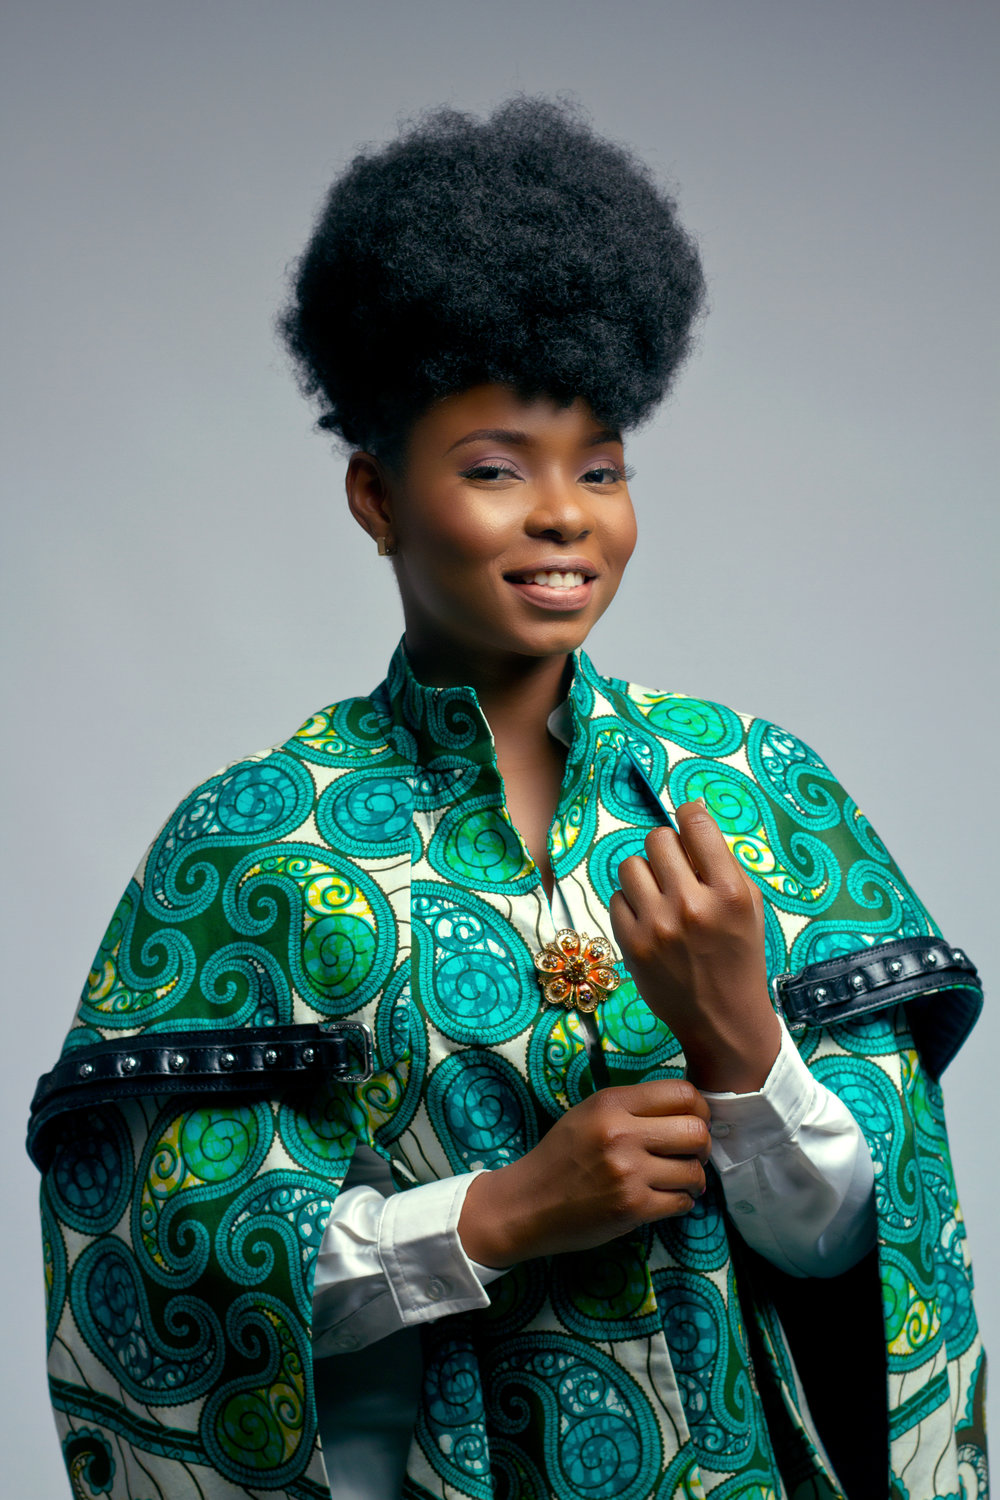 Top female artist, Yemi Alade